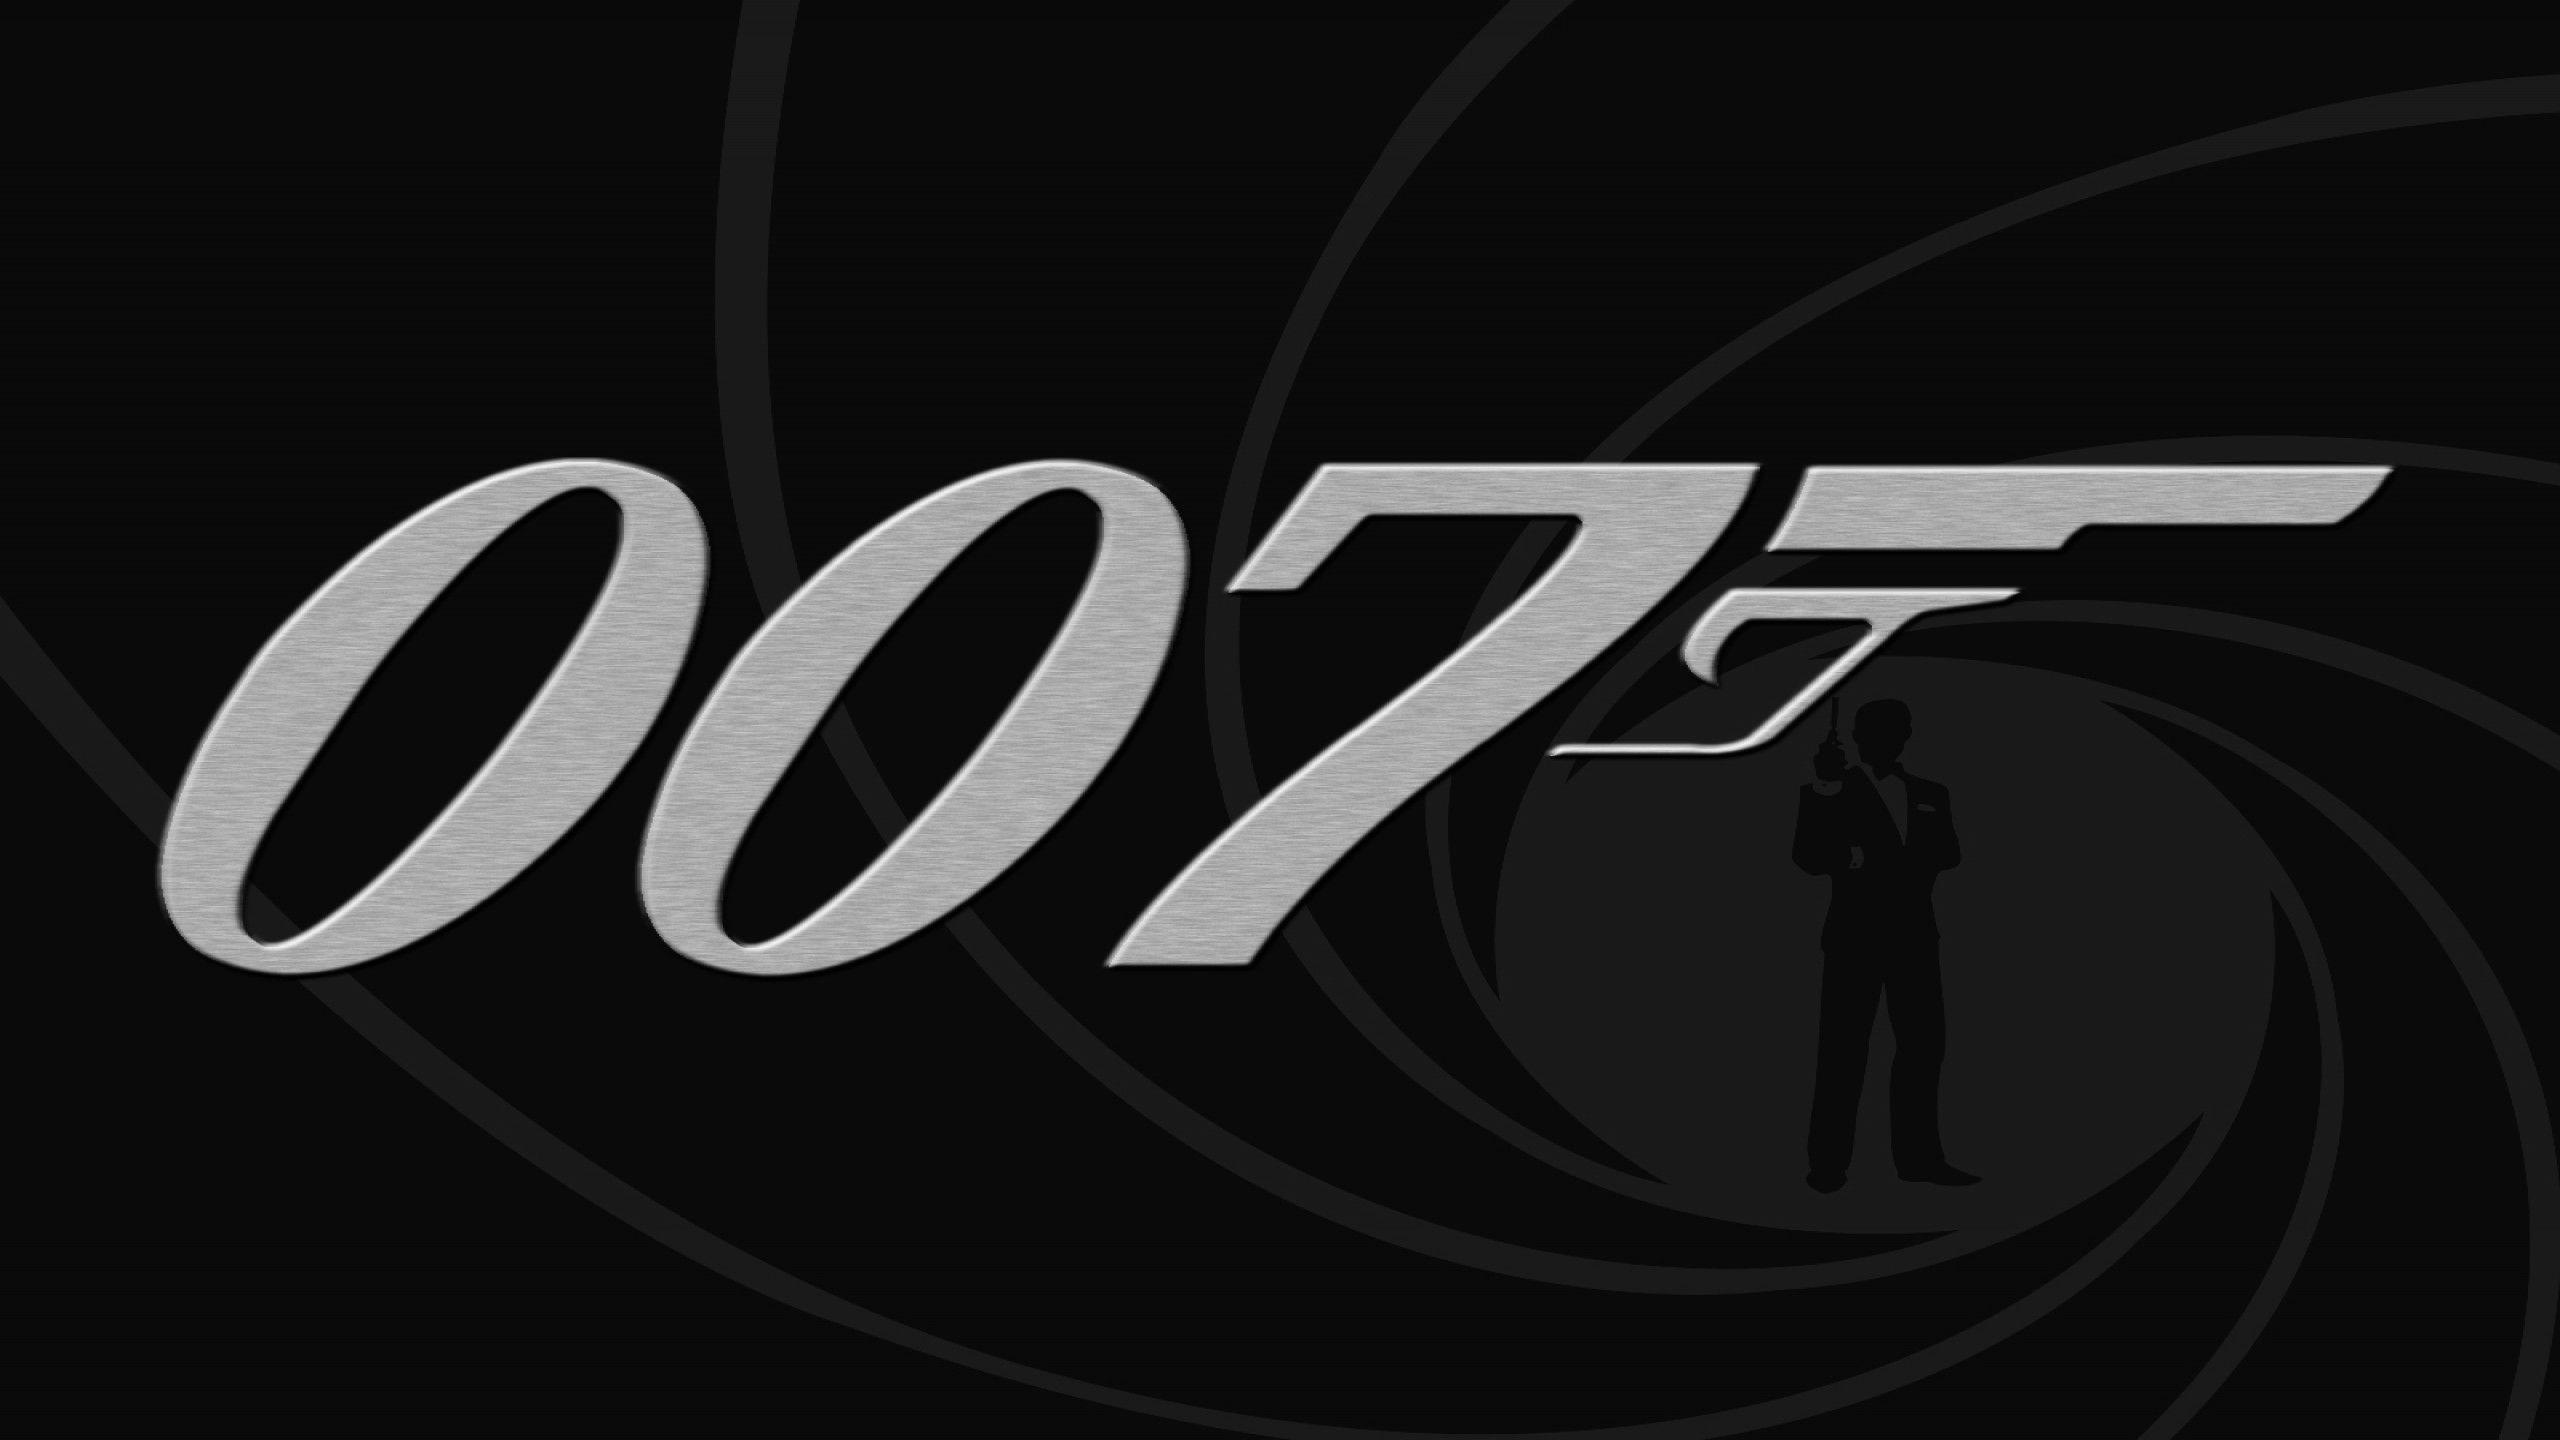 007 Wallpapers 2560x1440